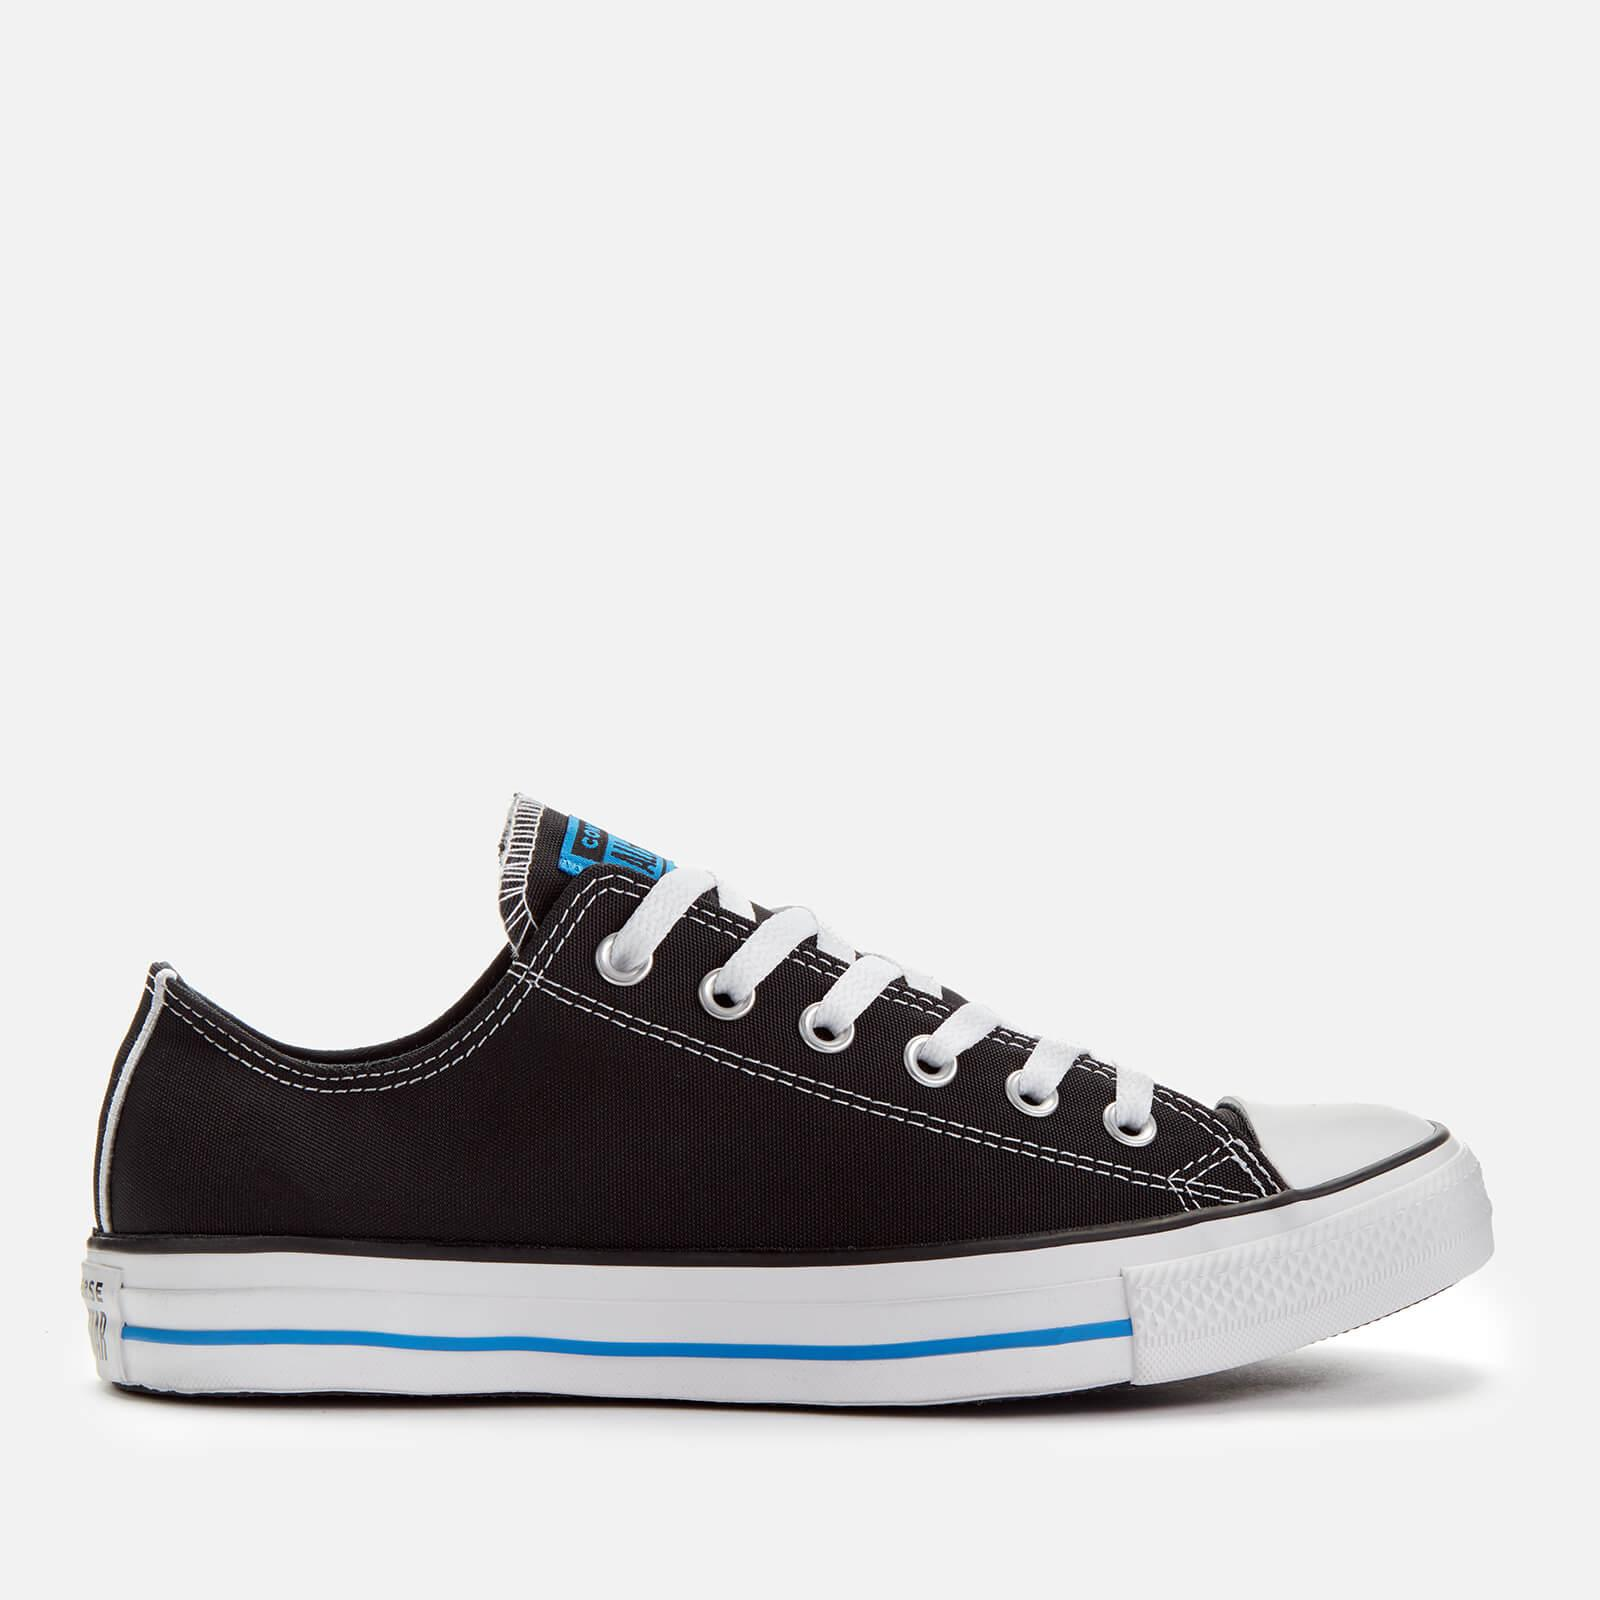 fff5371855d6 Converse. Men s Black Chuck Taylor All Star Ox Trainers. £50 From AllSole